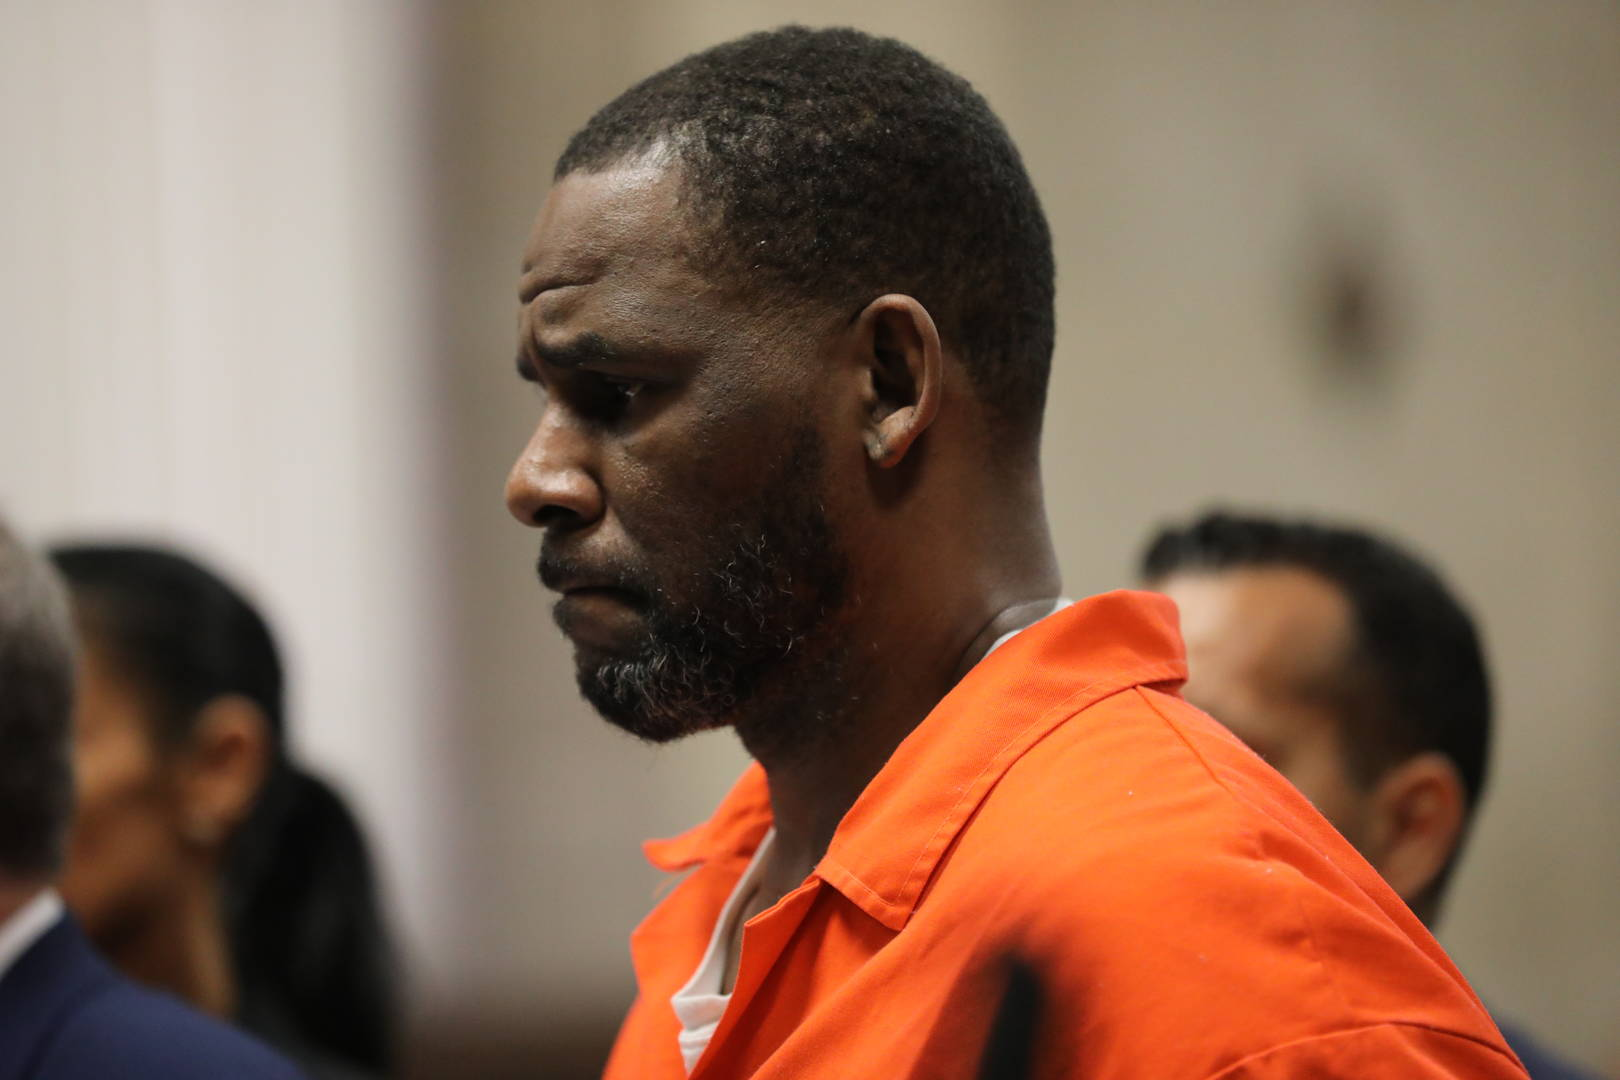 R. Kelly Ordered To Use Royalties To Pay Child Support